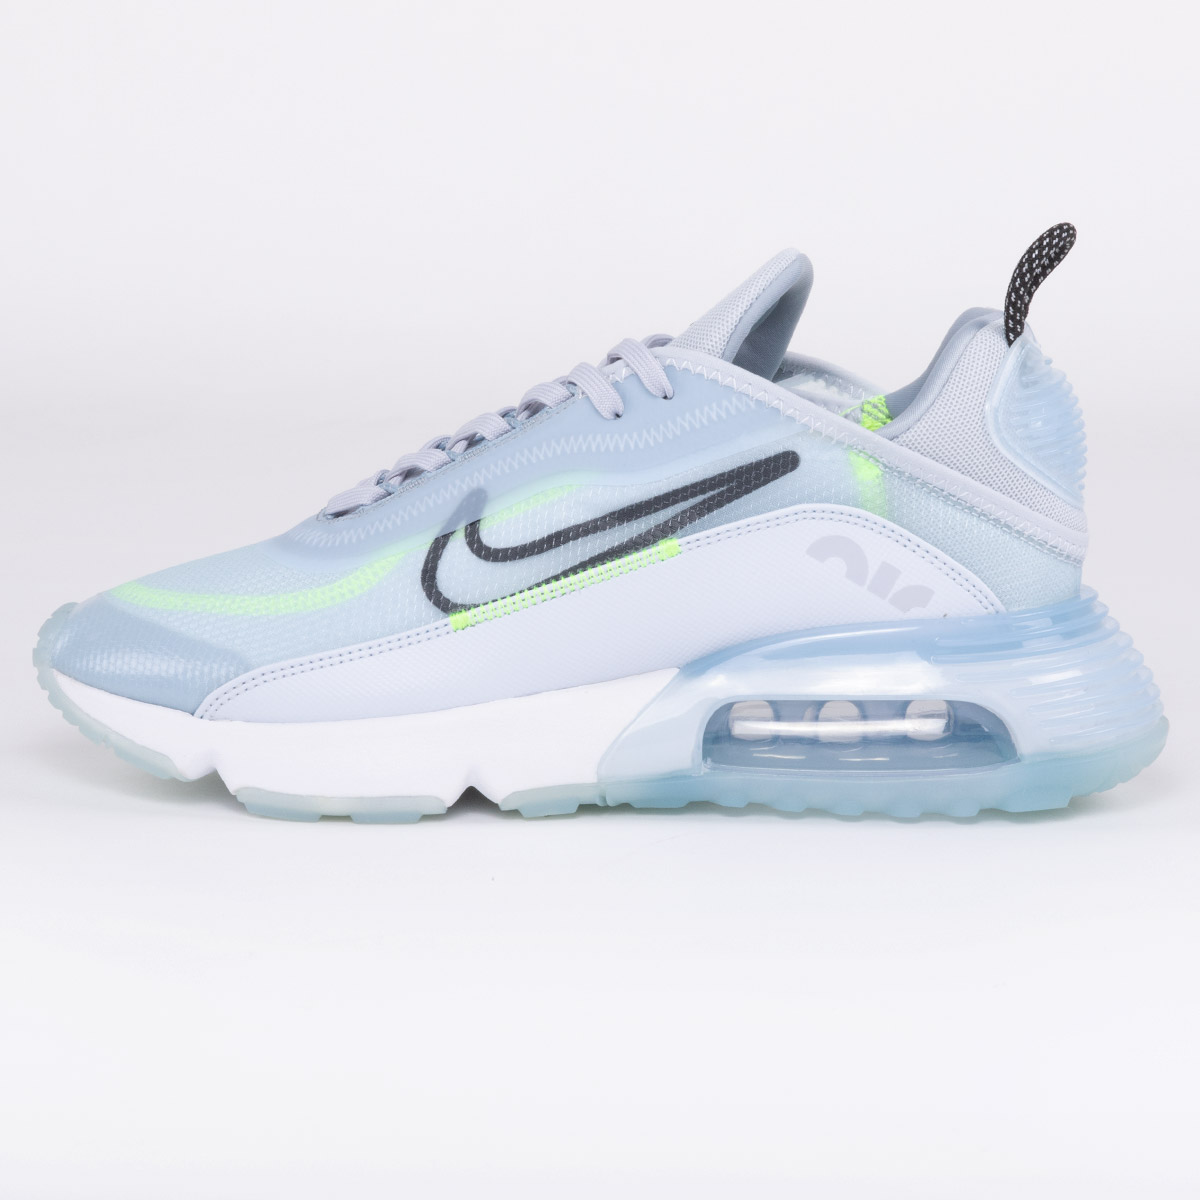 Shop Nike Air Max 2090 Ice Blue CT7695